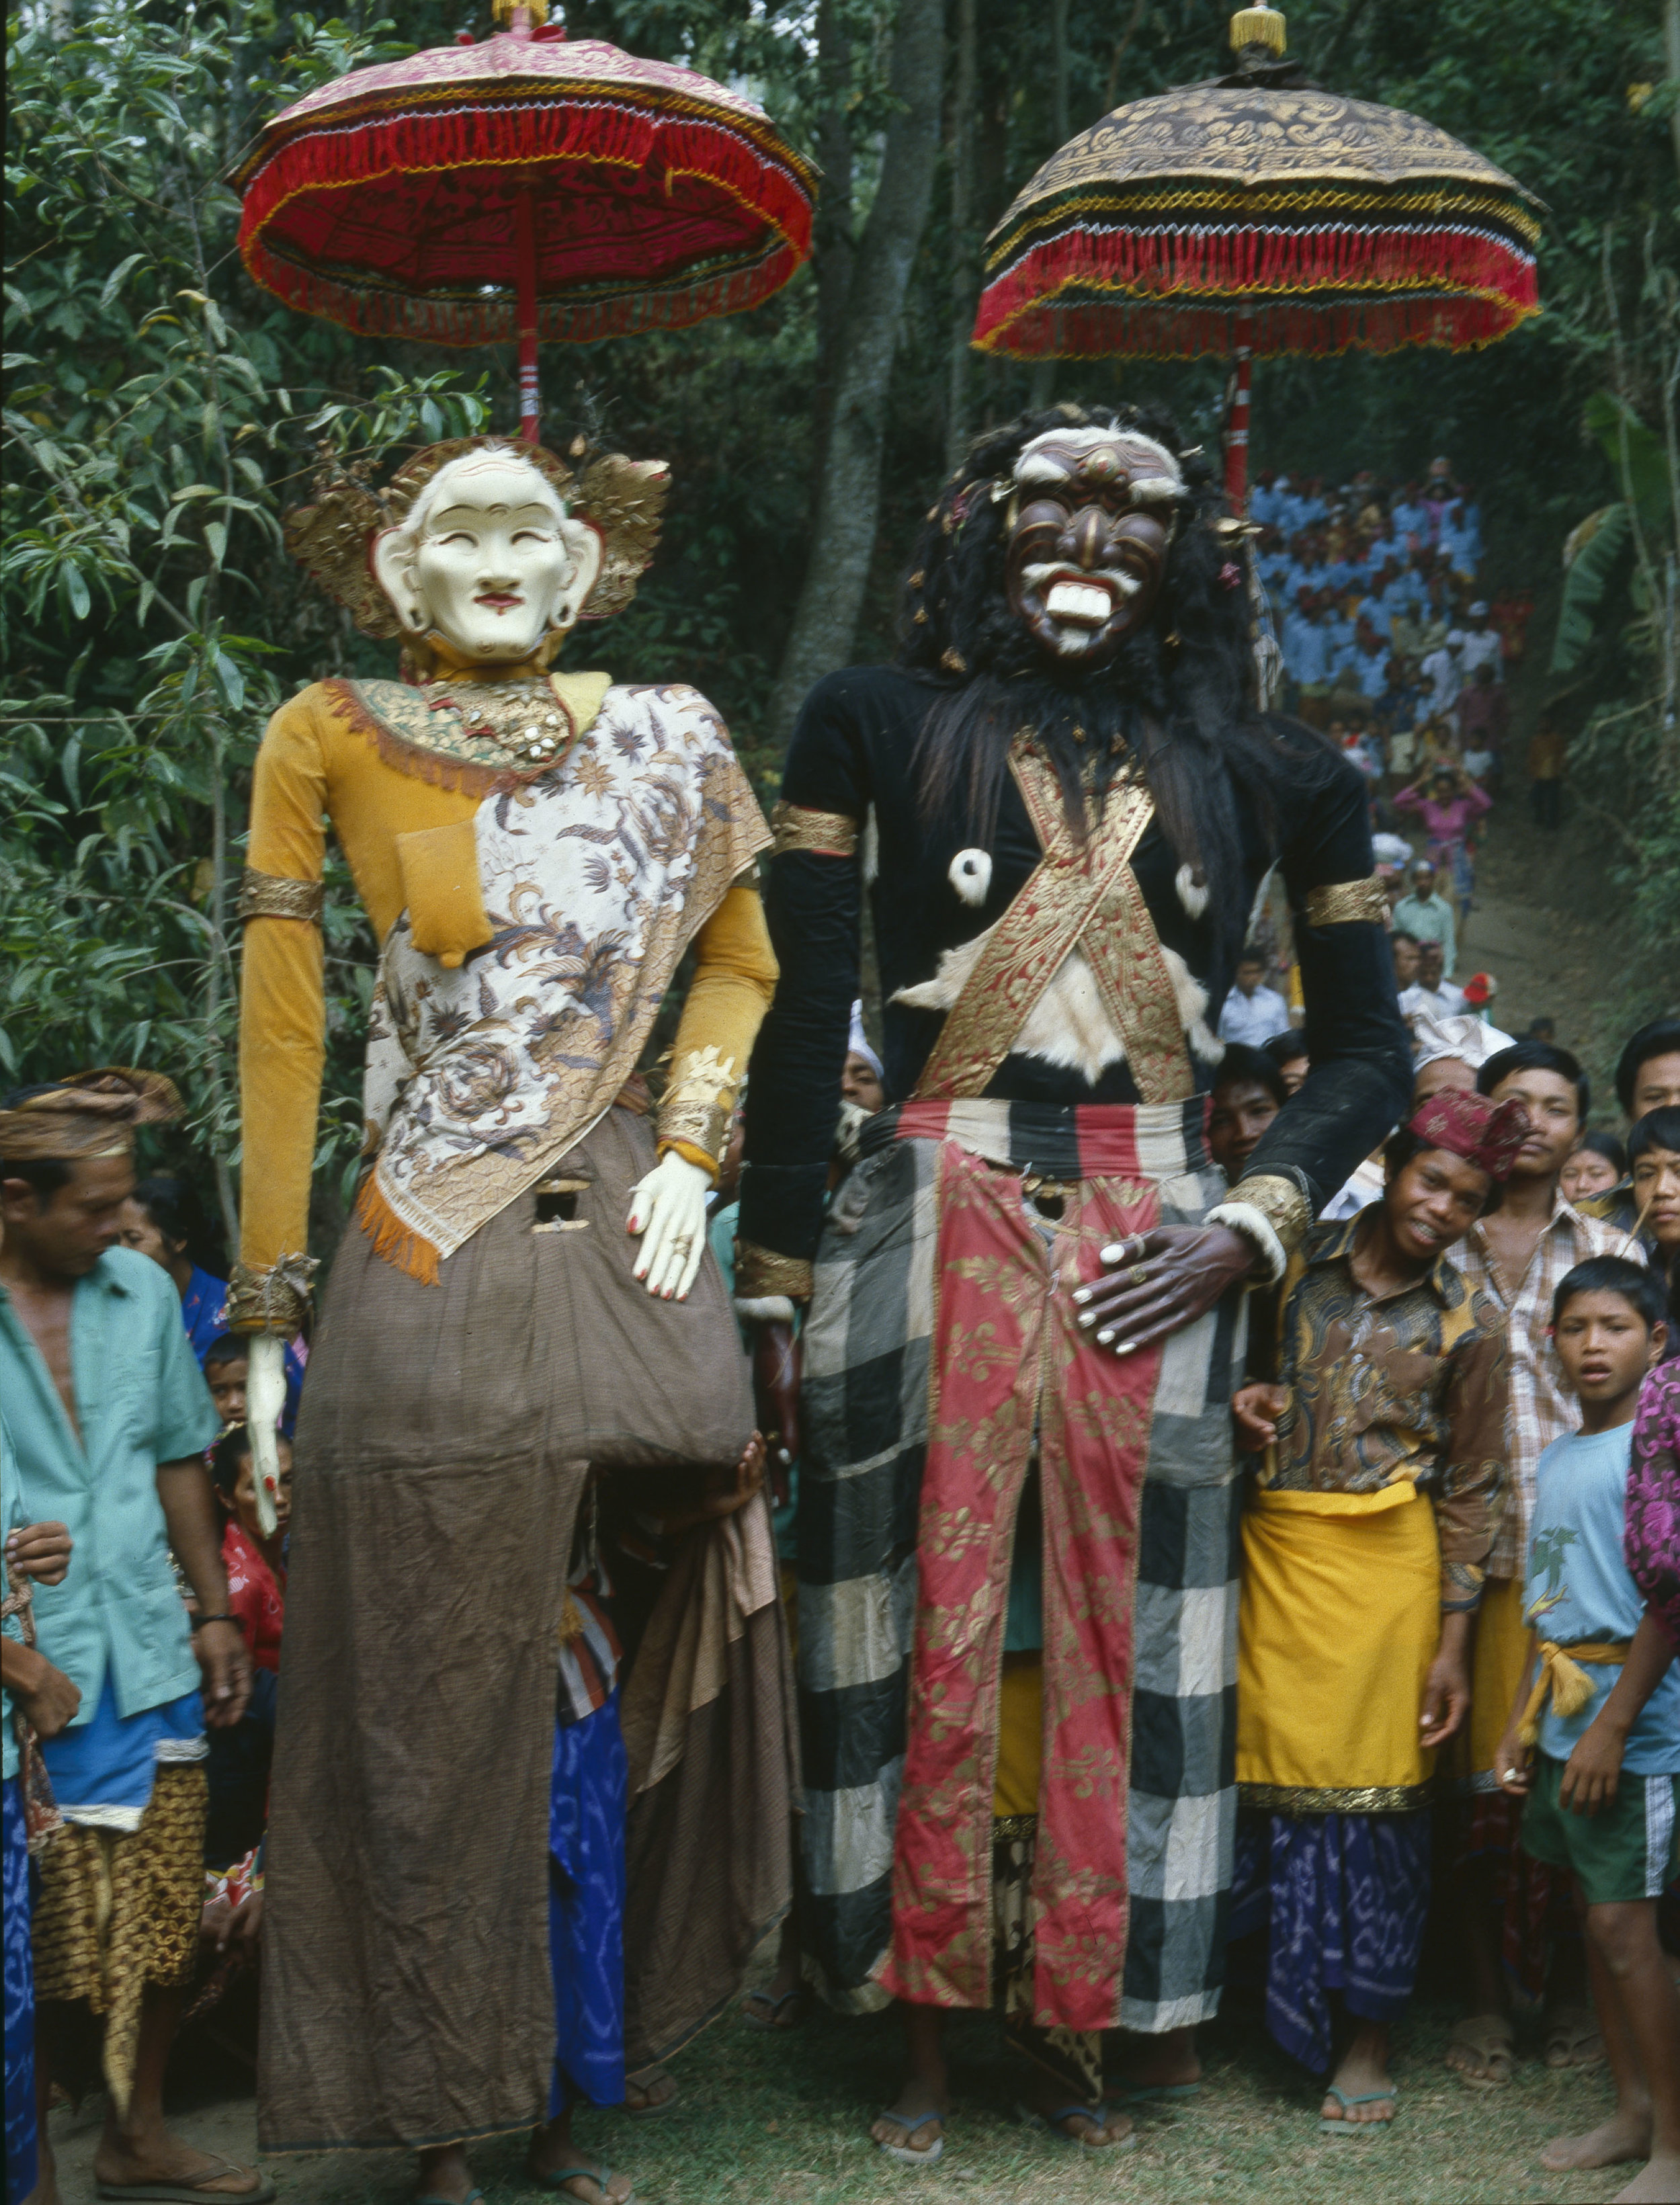 The Balinese version of Hinduism has an elaborate calender of festivals associated with each major temple. Here the Barong Landung, revered as deities, return from a symbolic bath. The black giant is Jero Gede , the Big One, and his companion is Jero Luh, the Female. Country of Origin: Indonesia. Culture: Balinese. Date/Period: 1982. Place of Origin: Bali. Credit Line: Werner Forman Archive.